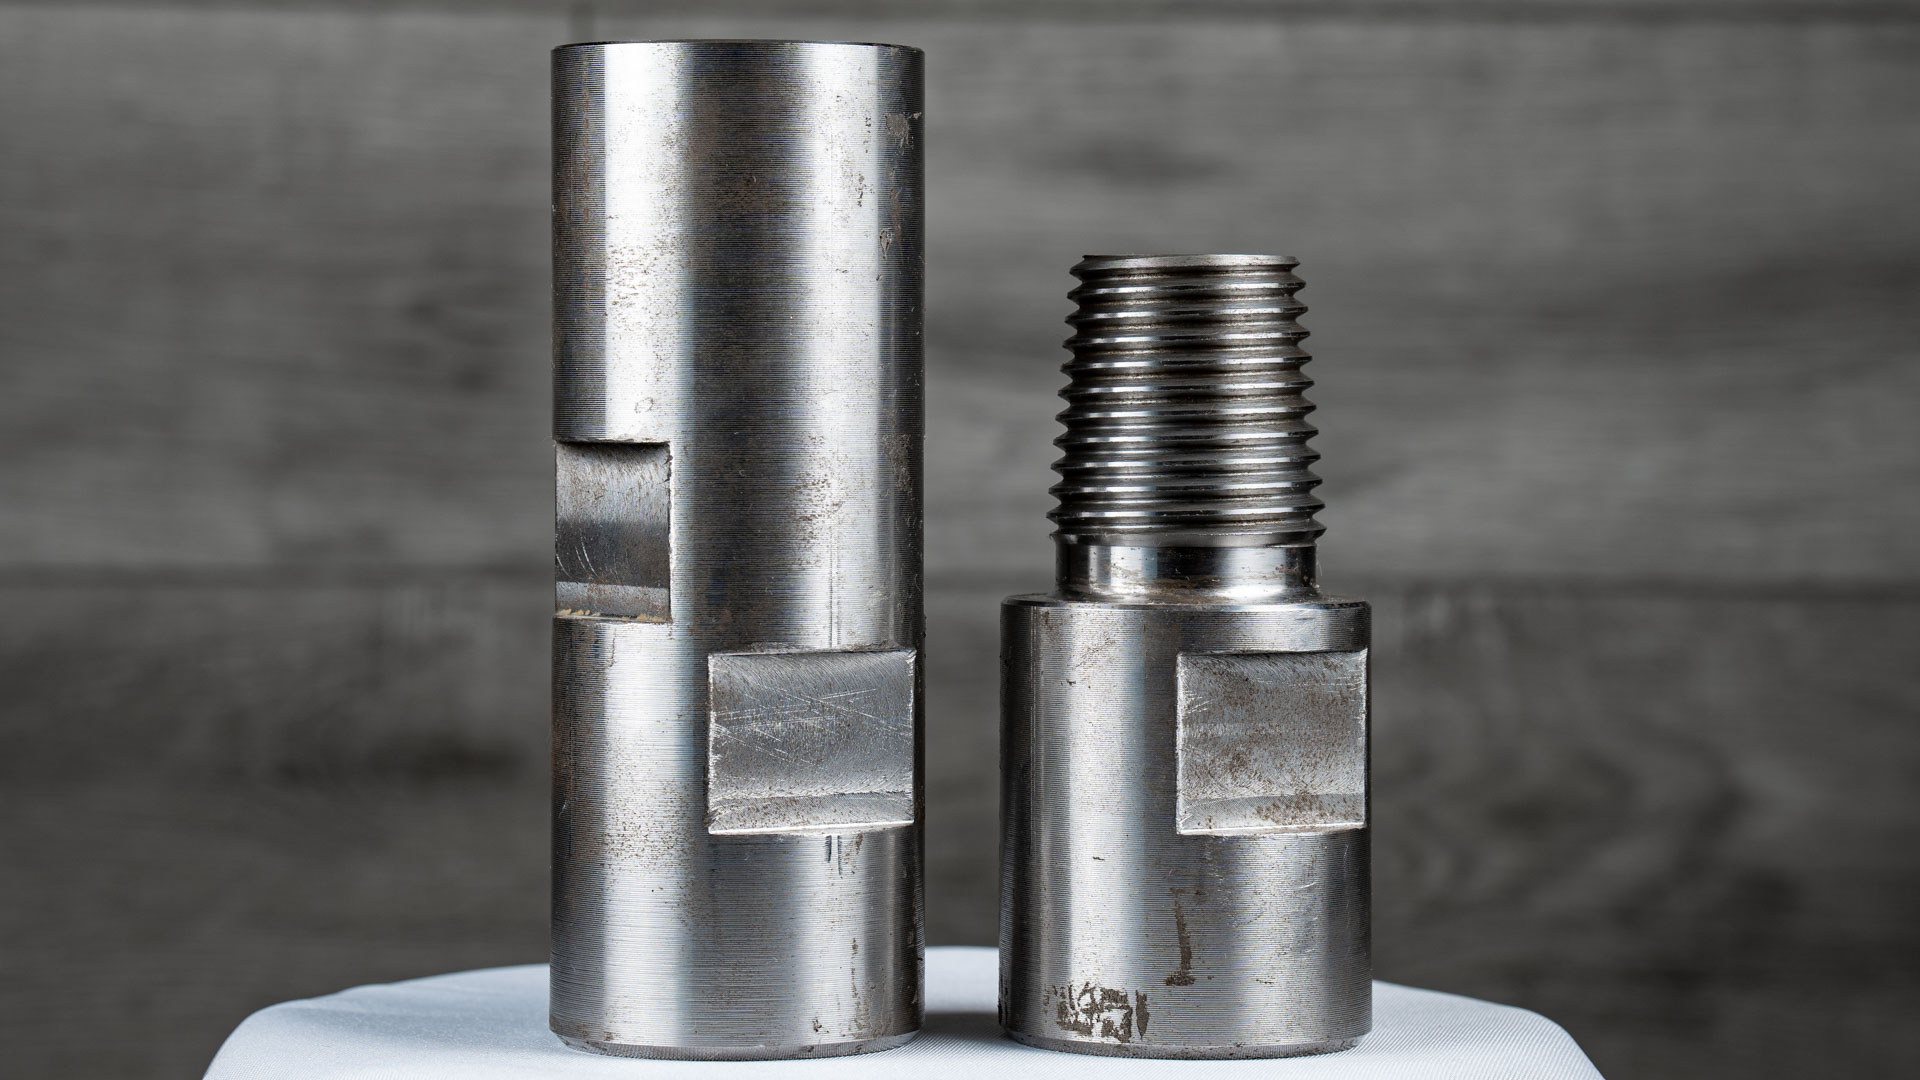 Drill pipe connections